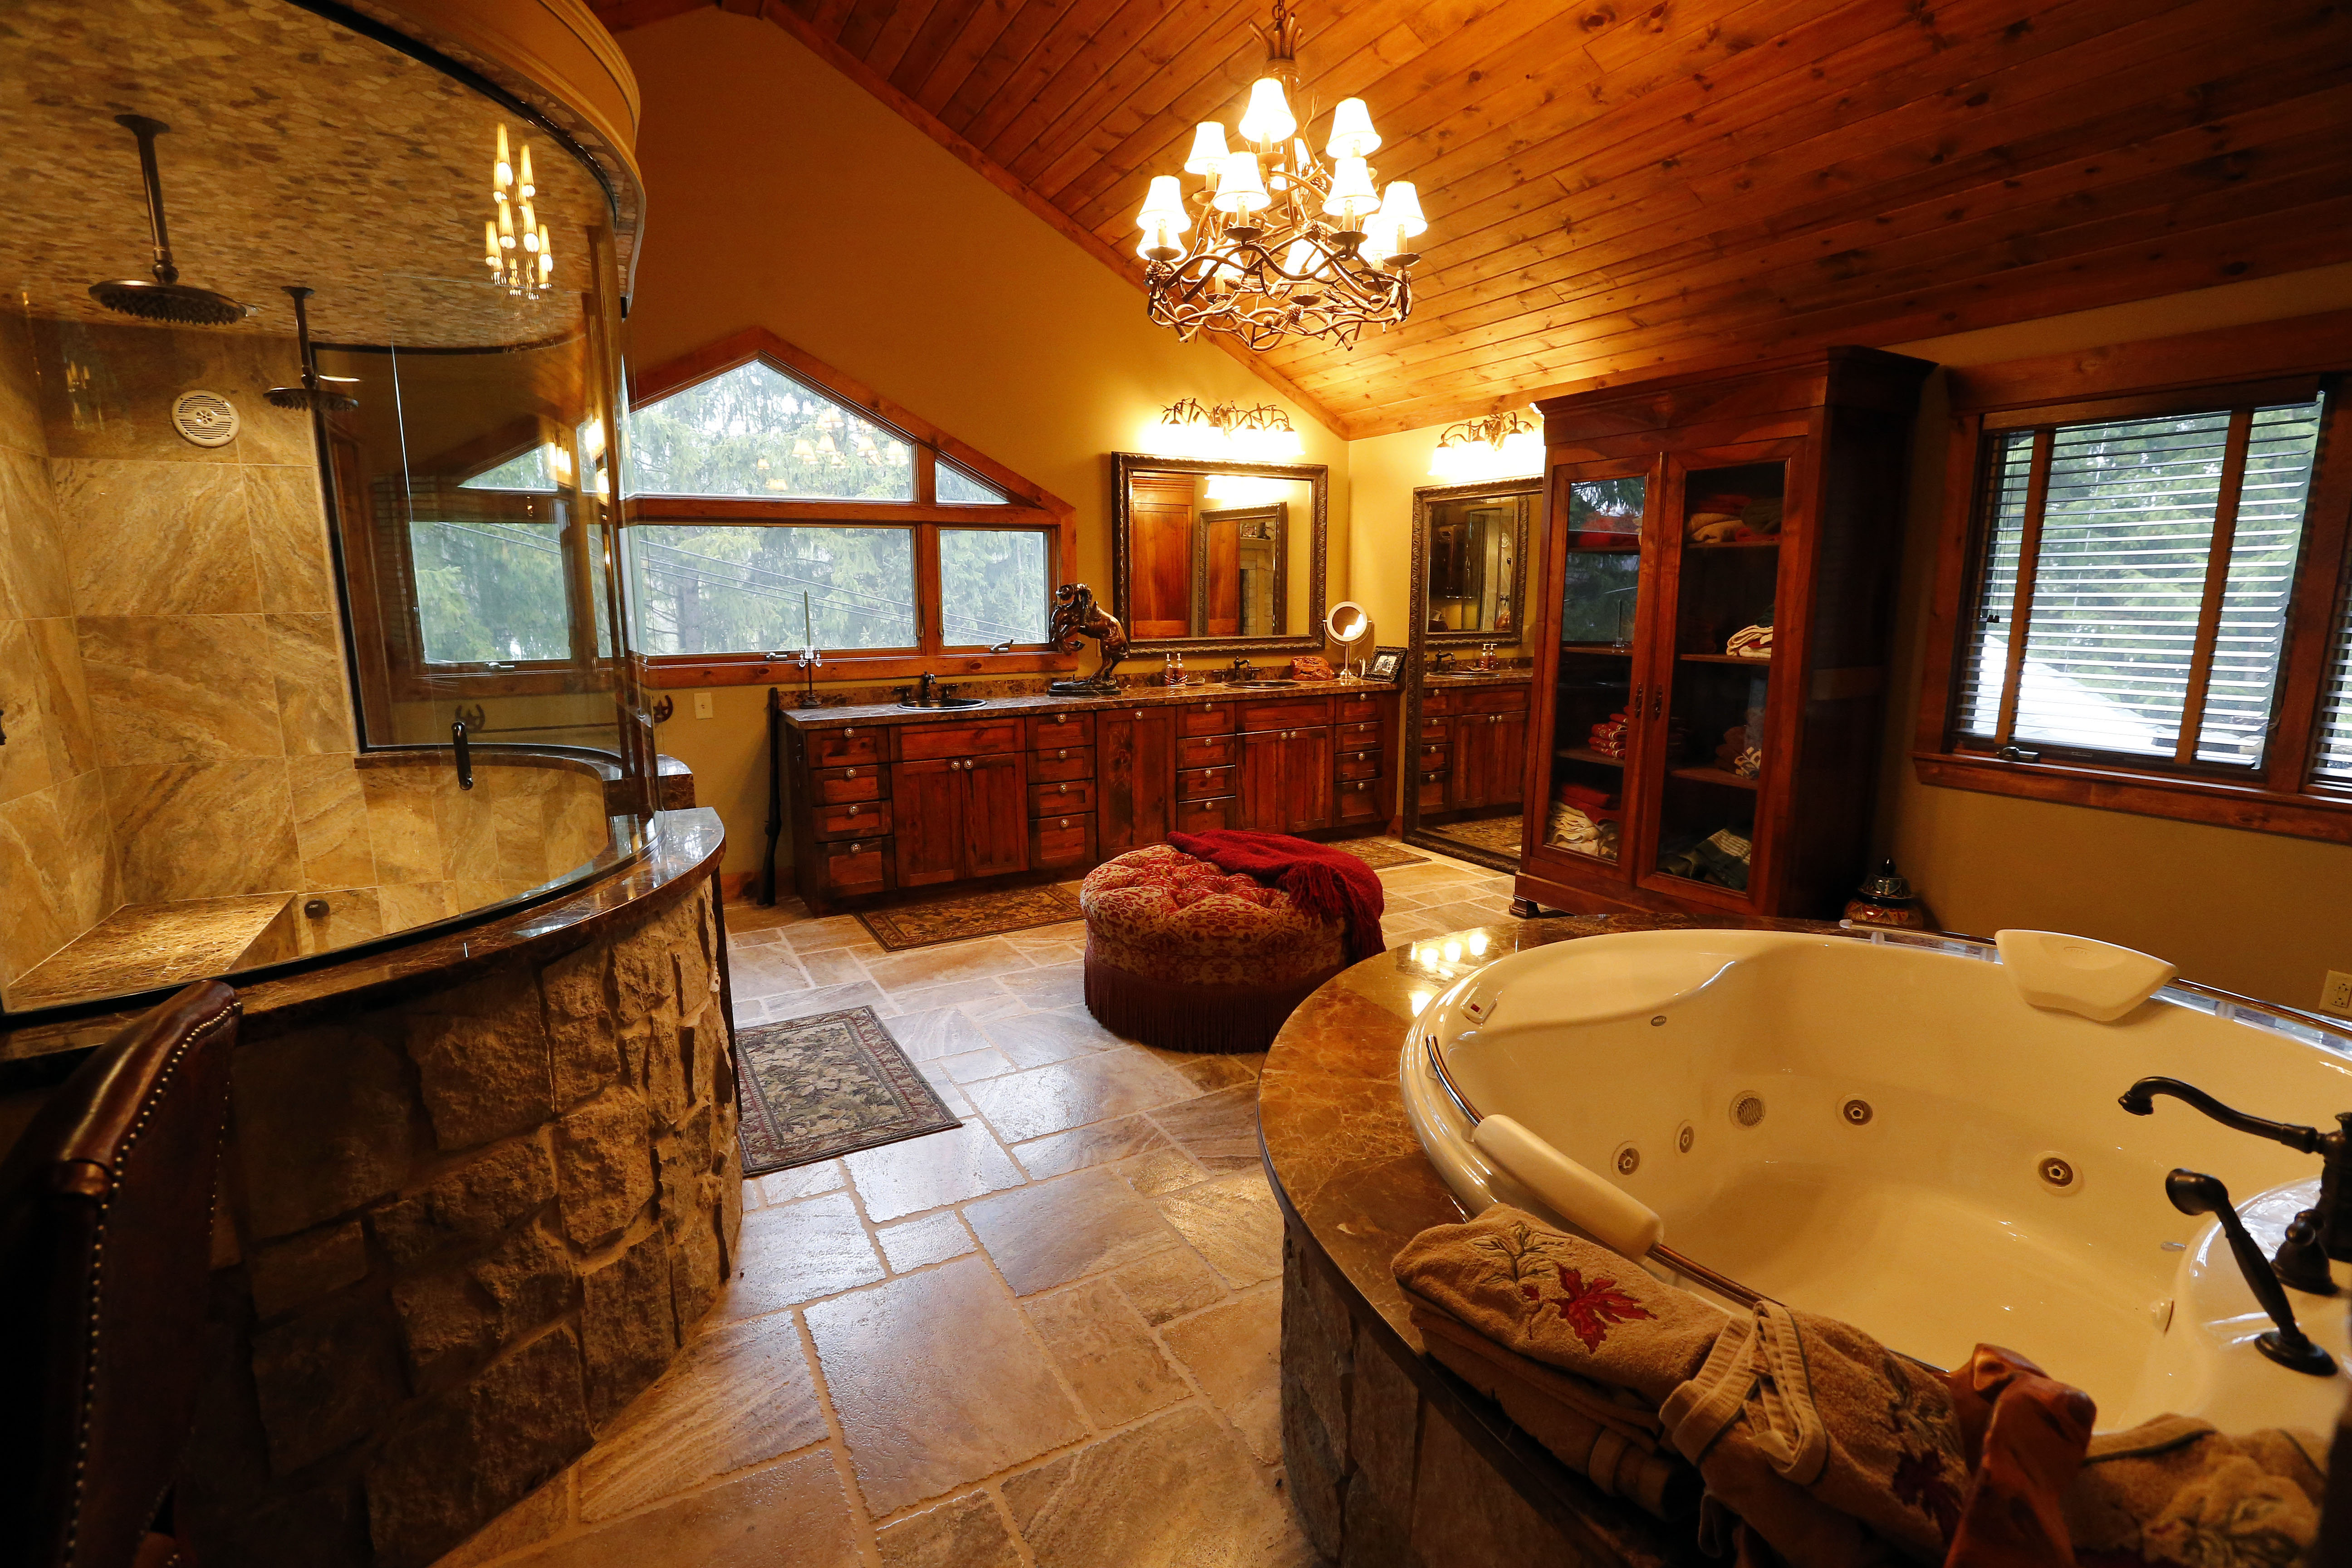 The master bath is part of the addition Kent and Lisa Keating put on their Ellicottville home. Photo by Mark Mulville/Buffalo News